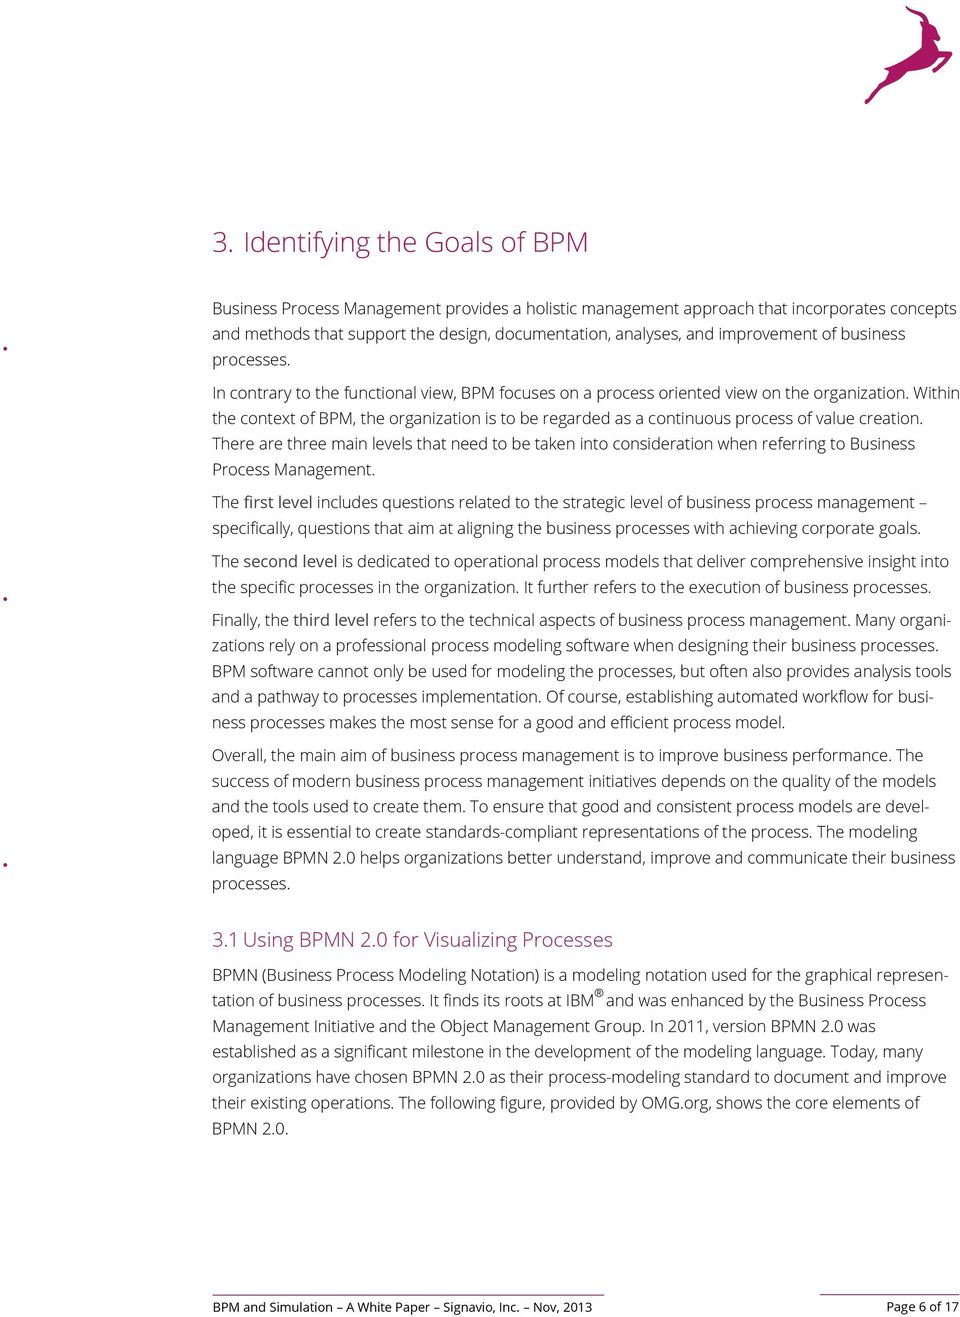 Within the context of BPM, the organization is to be regarded as a continuous process of value creation.